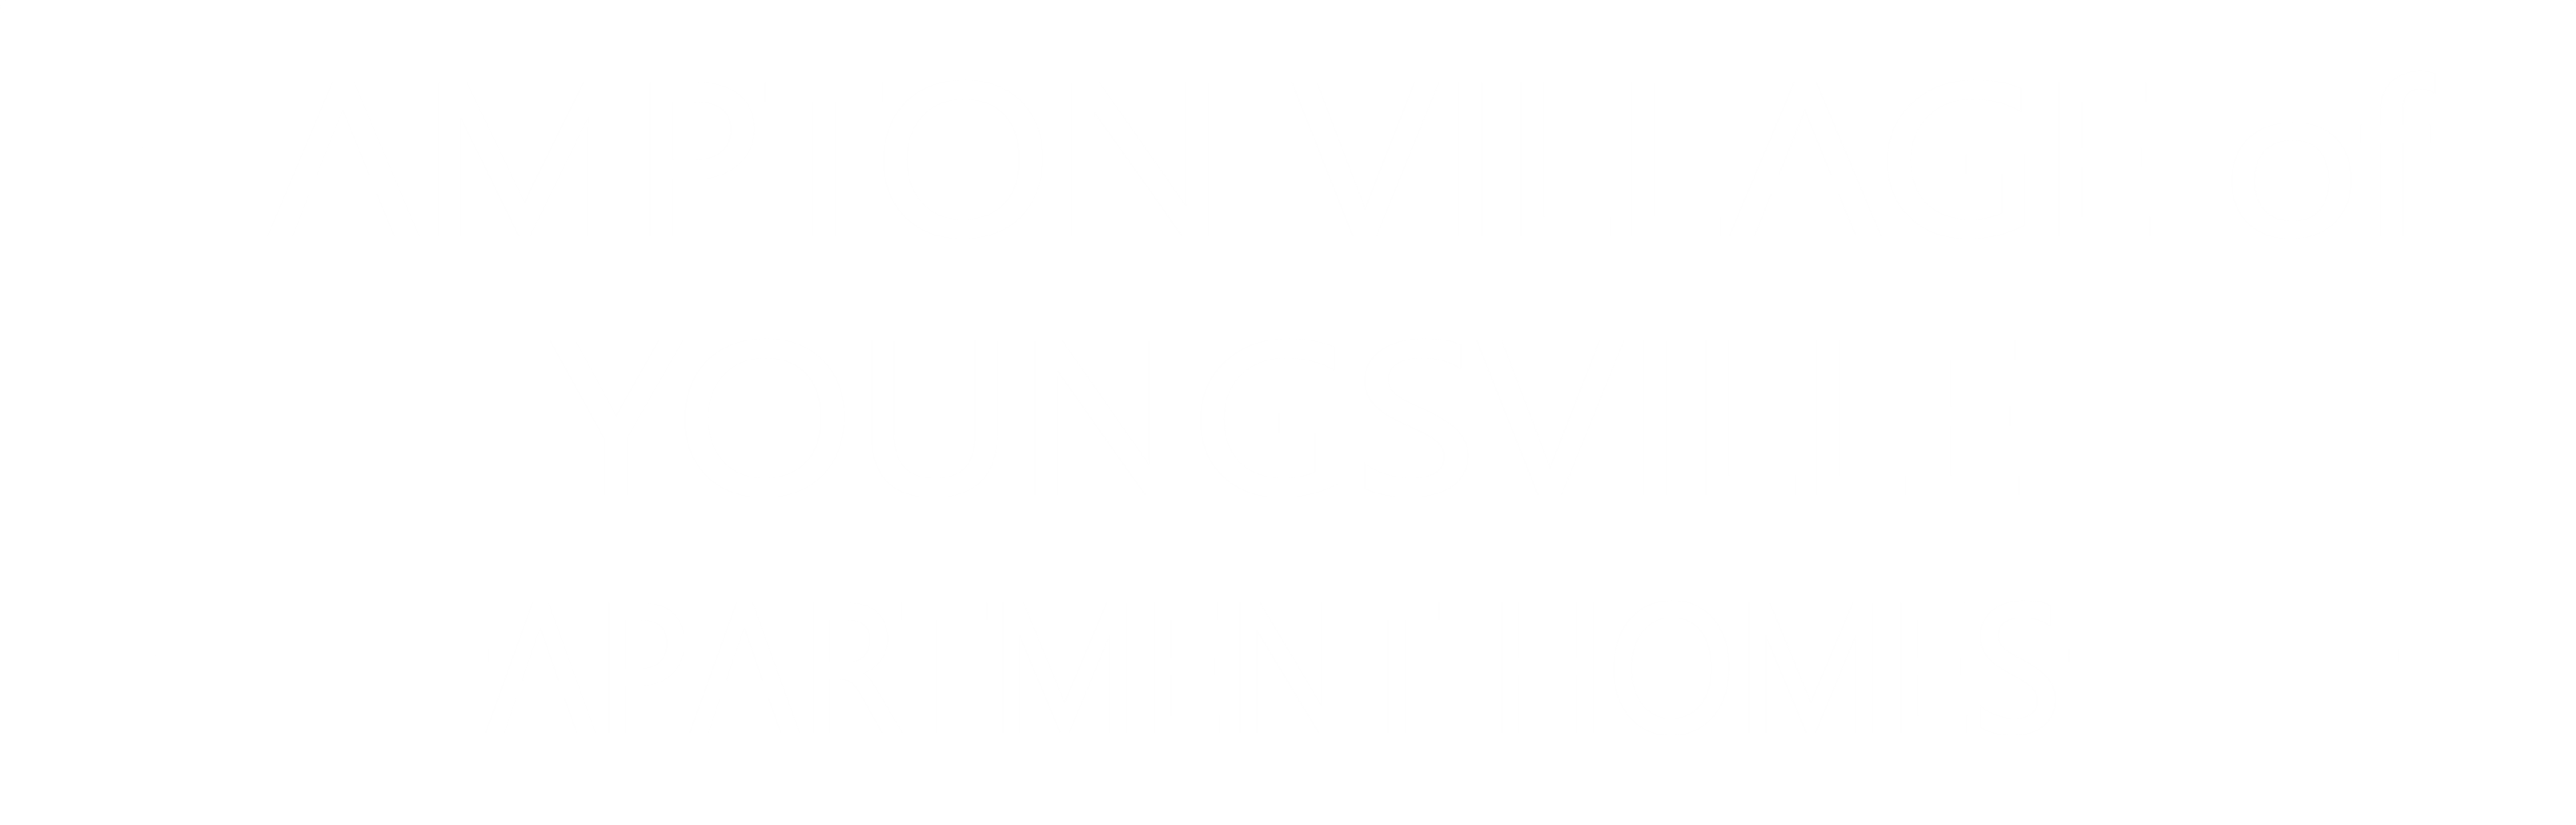 Hampton Village of Youngsville Property Logo 44